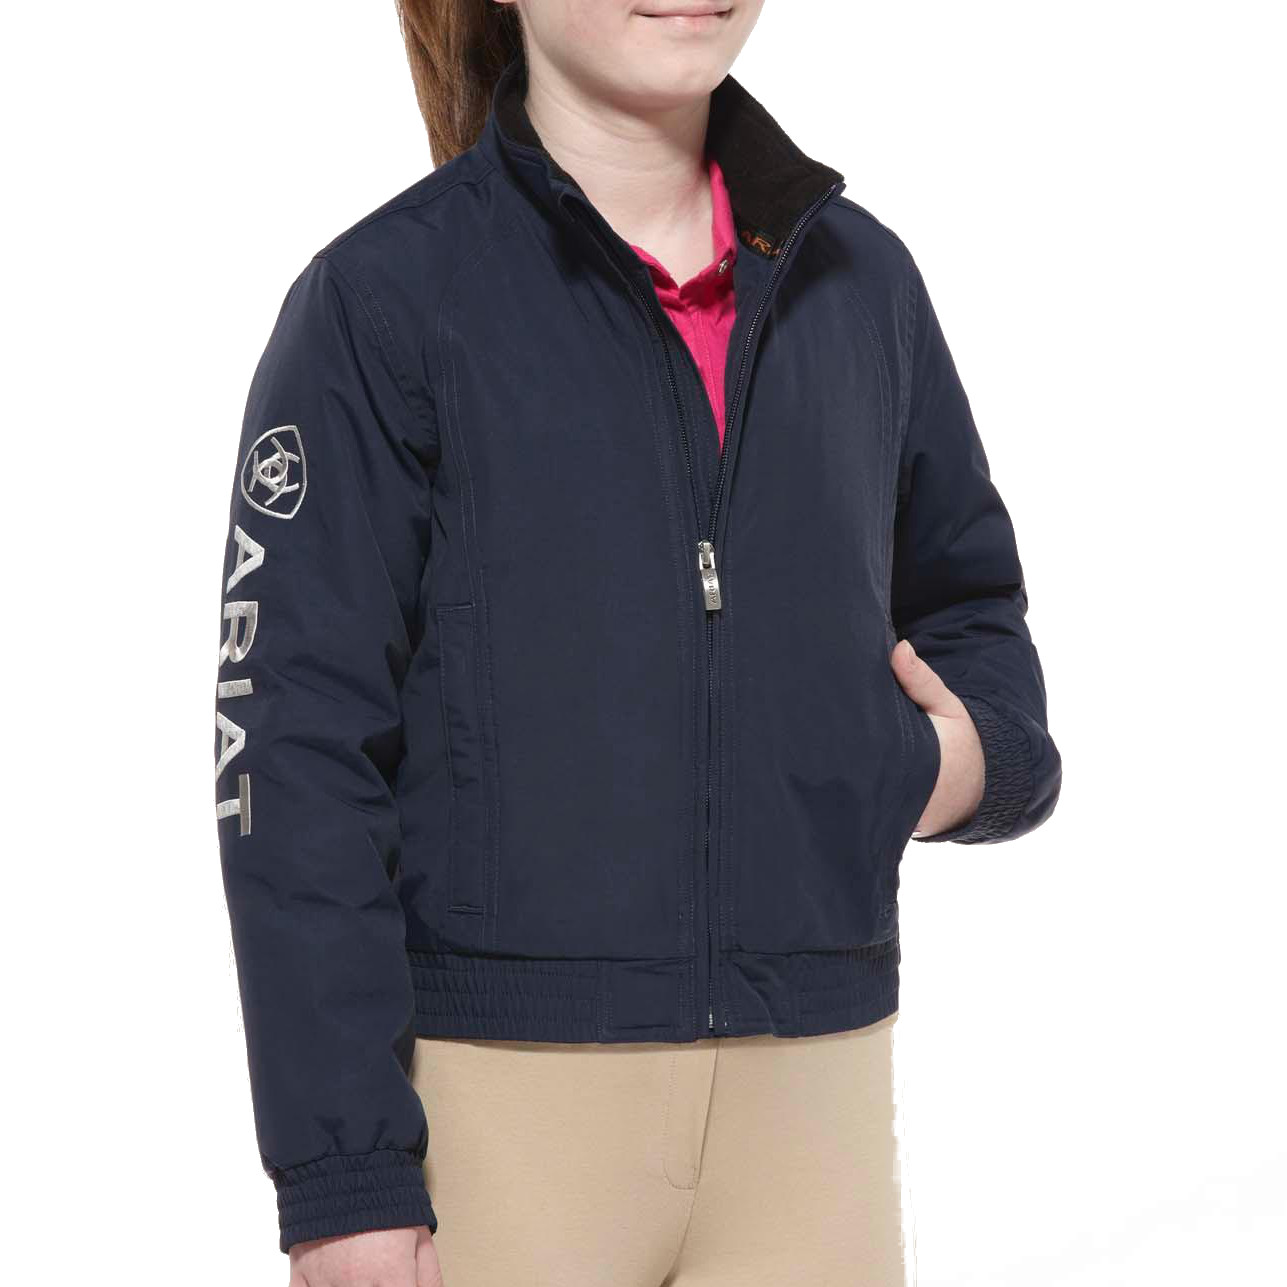 Ariat Youth Stable Team Blouson Jacket Navy Redpost